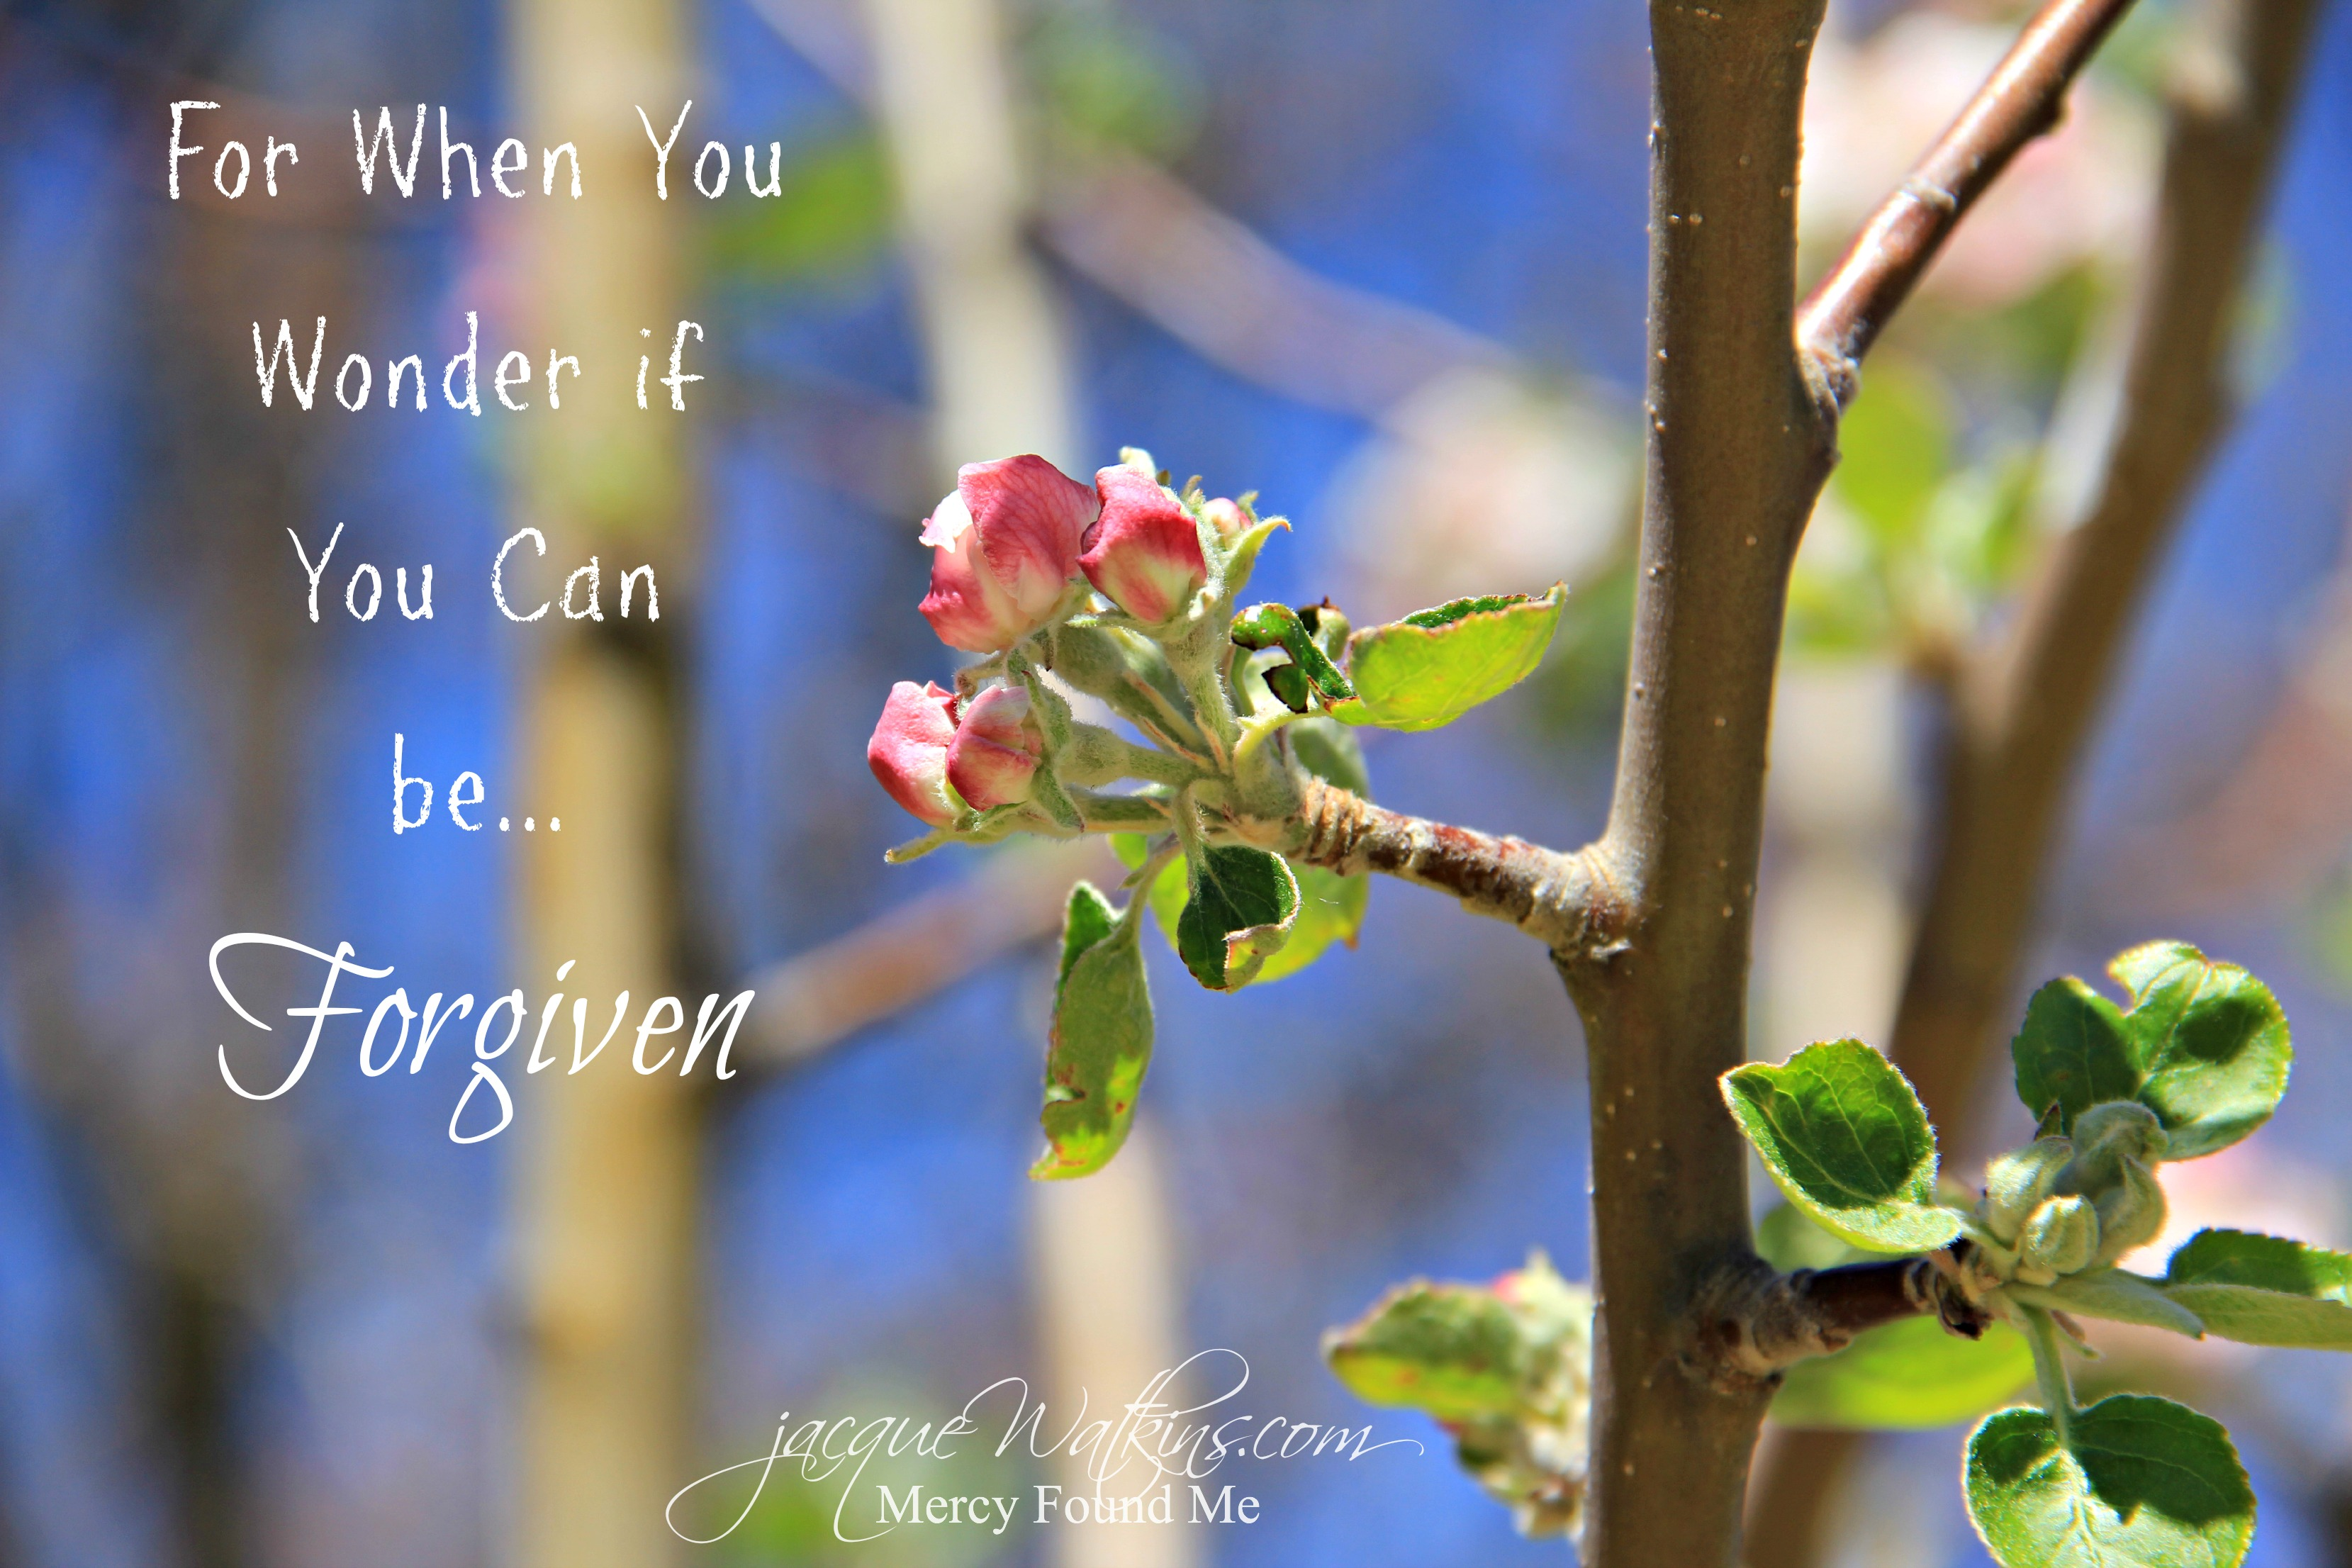 Mended :: For When You Wonder if You Can Be Forgiven {Week 5}